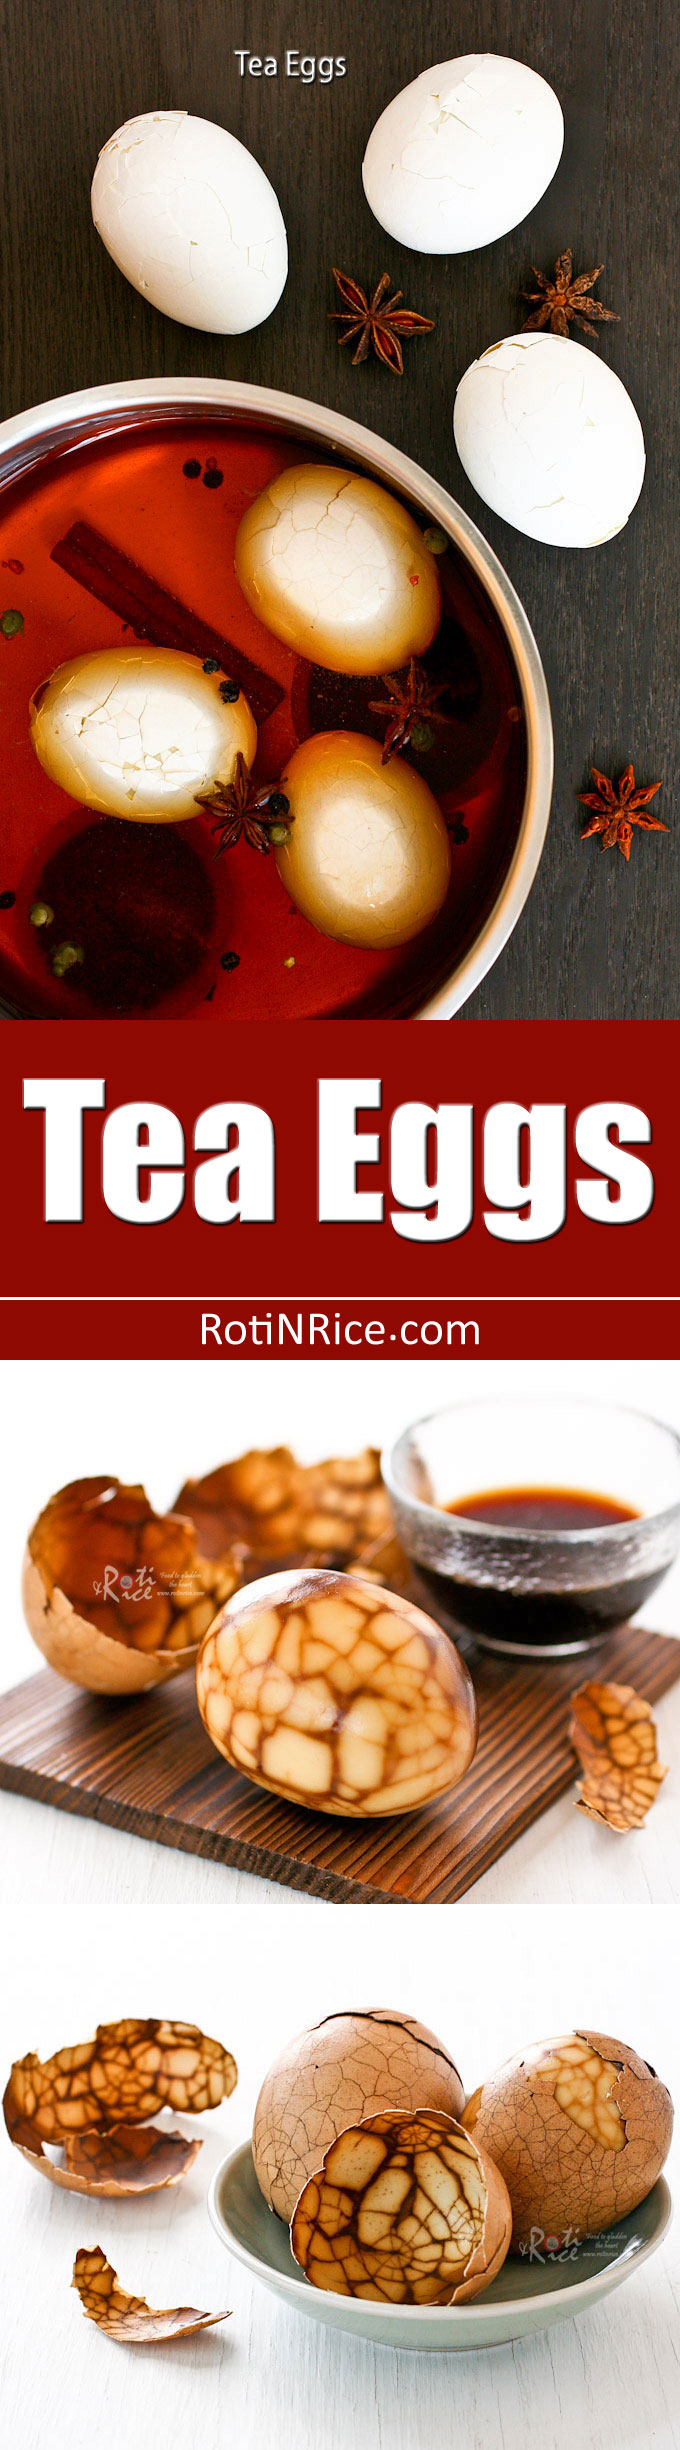 Make your own marbled Tea Eggs subtly infused with an aromatic tea and spice blend. They are not only tasty but pretty as well! | RotiNRice.com